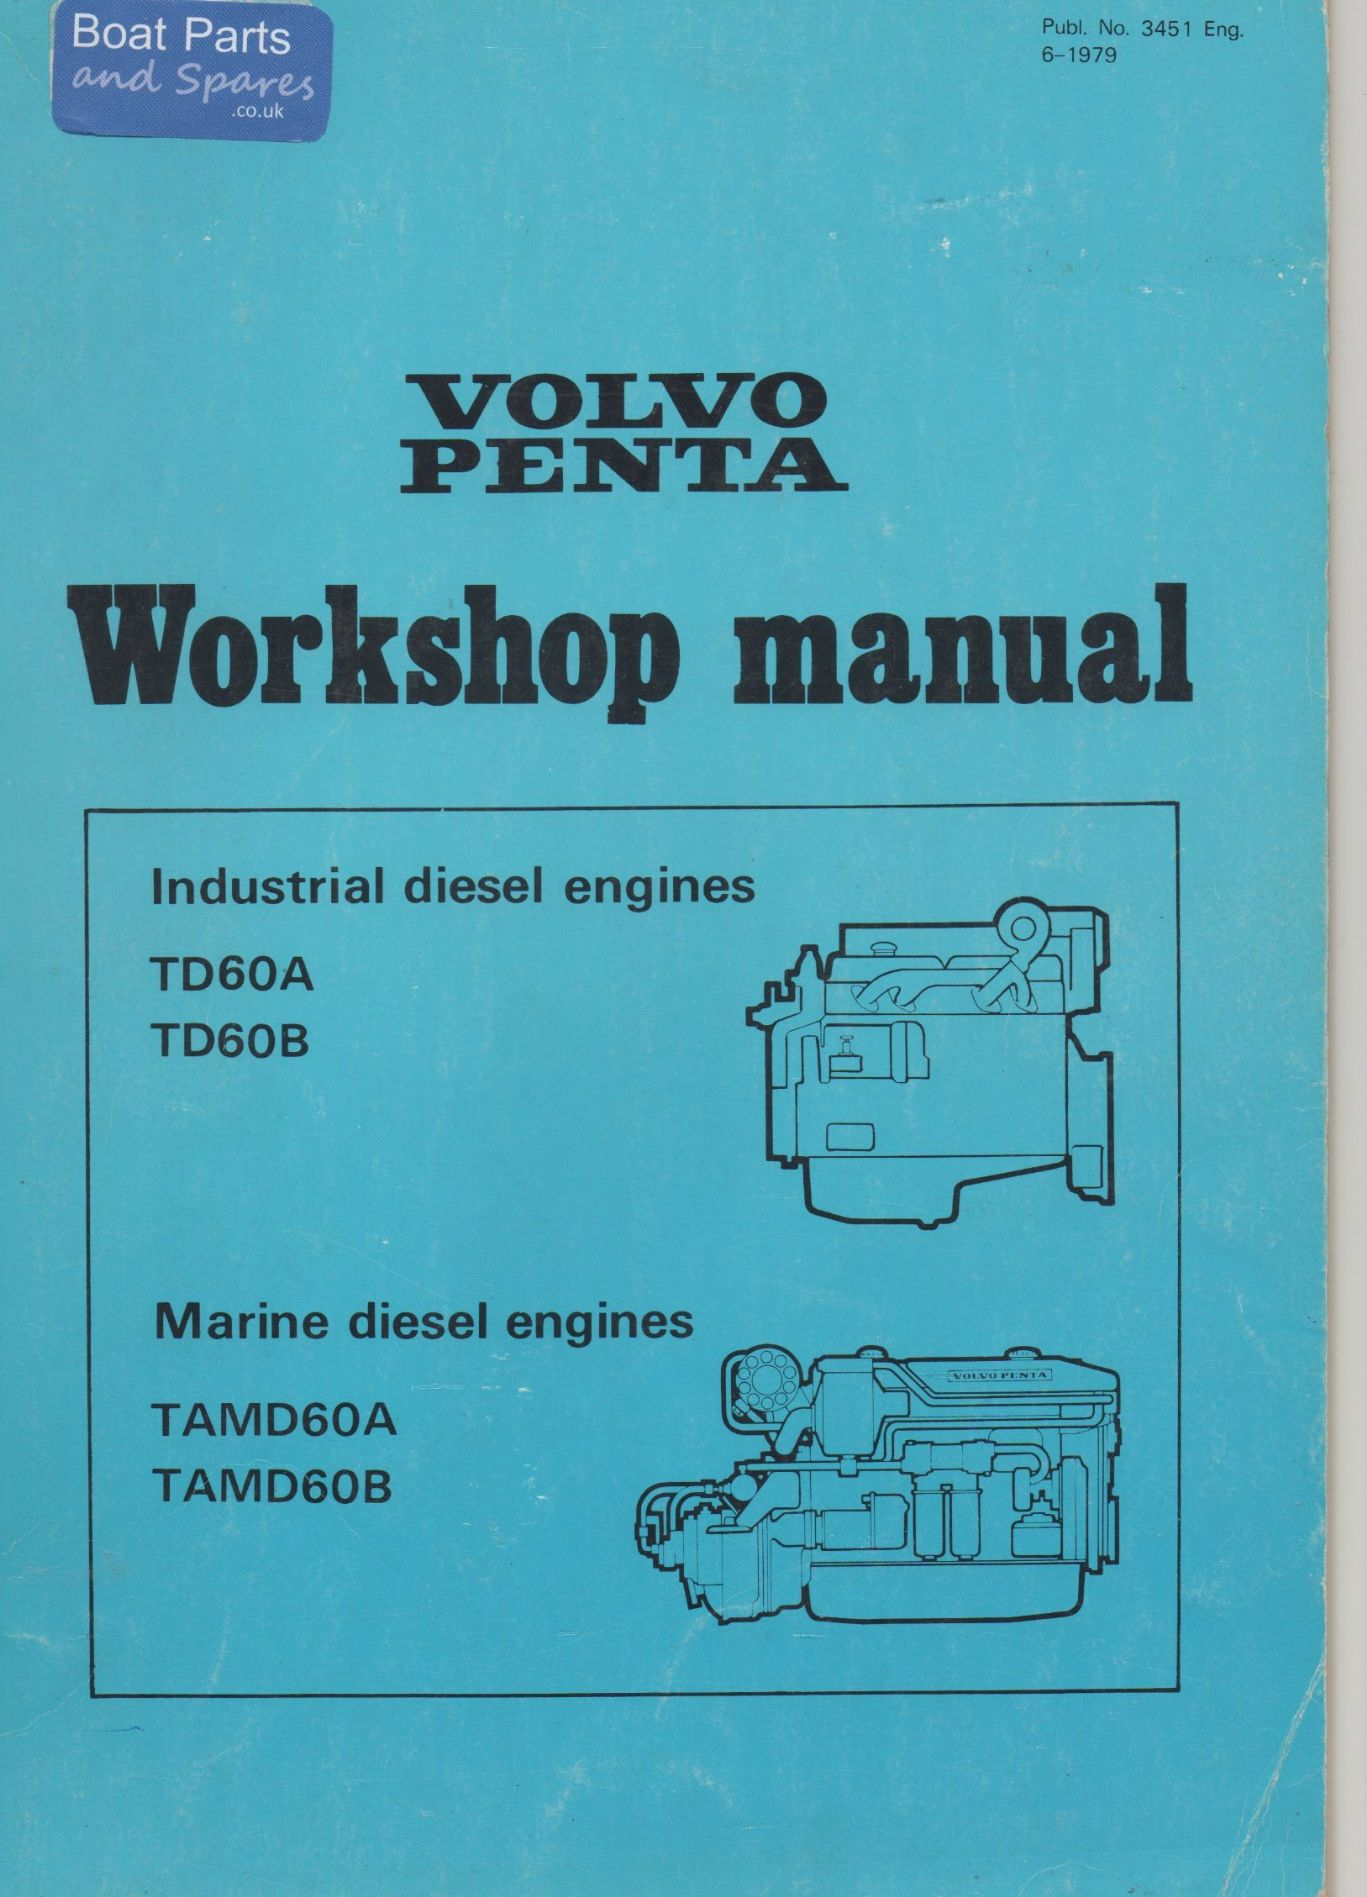 Volvo Penta Td60a Td60b Tamd60a Tamd60b Workshop Manual